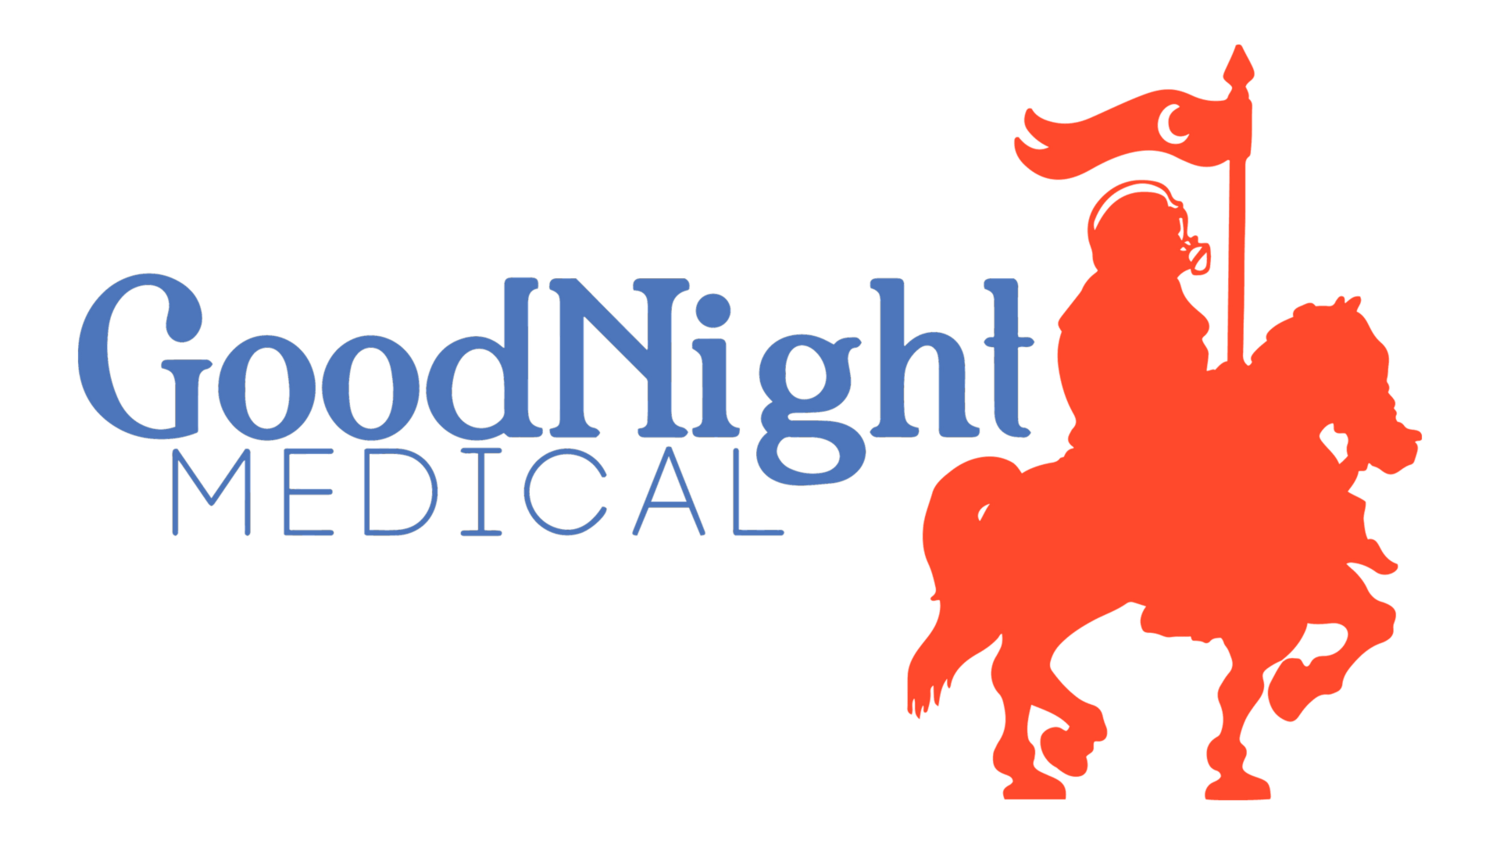 Good Night Medical